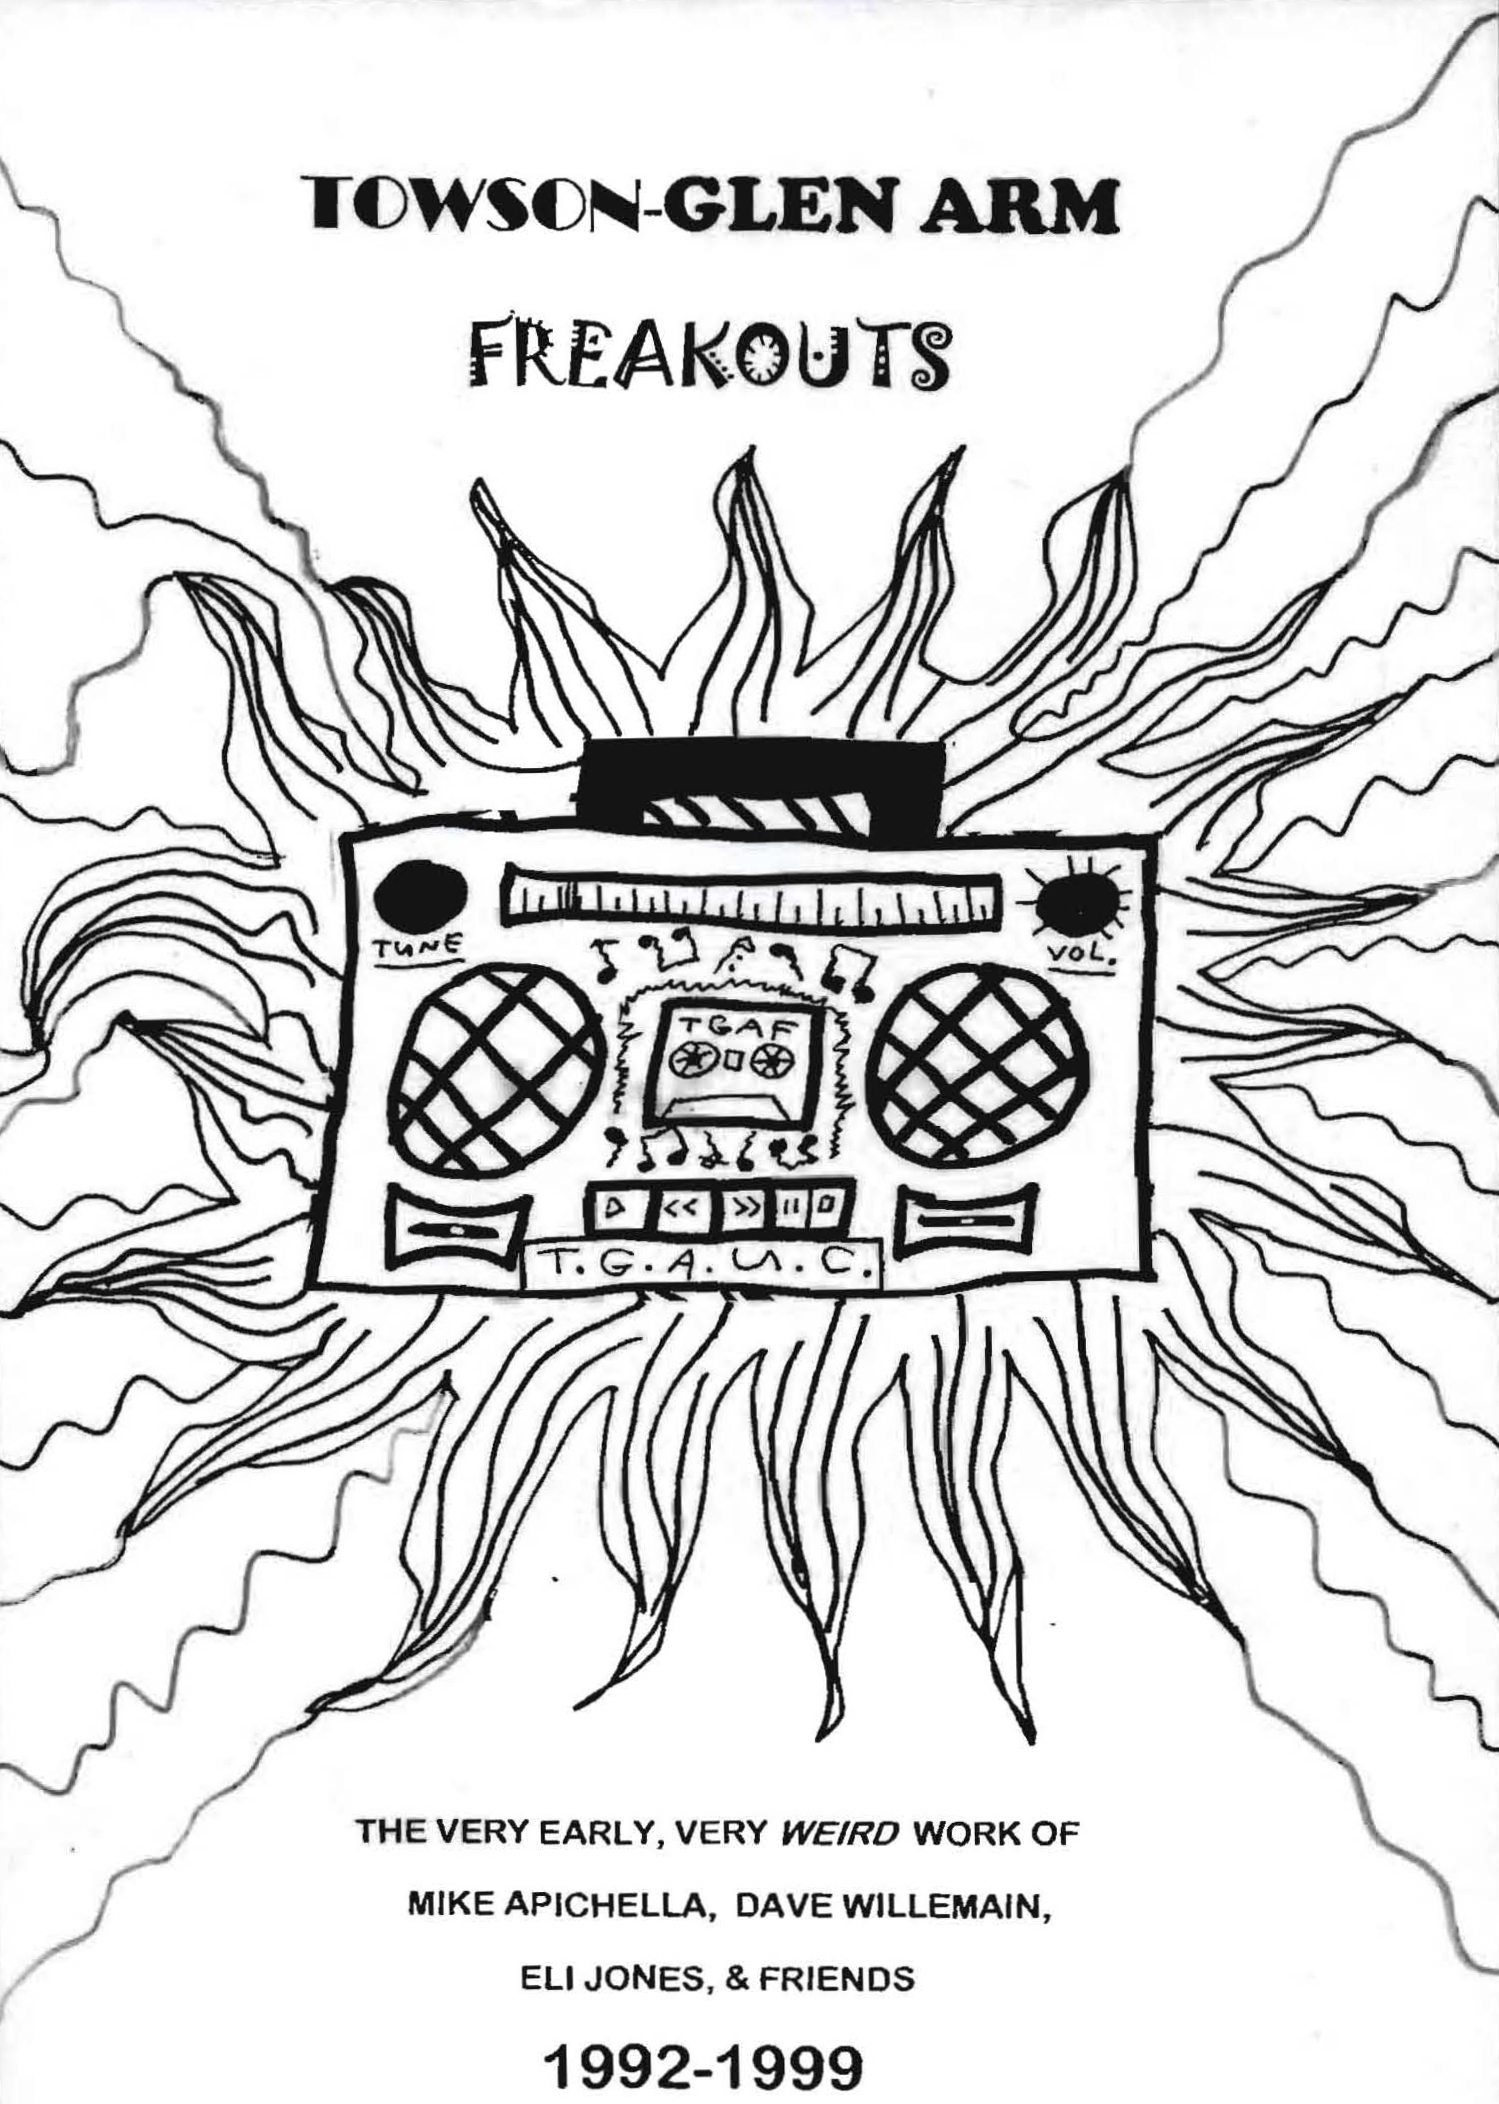 The First Towson Glen Arm Freakouts Compilation Record